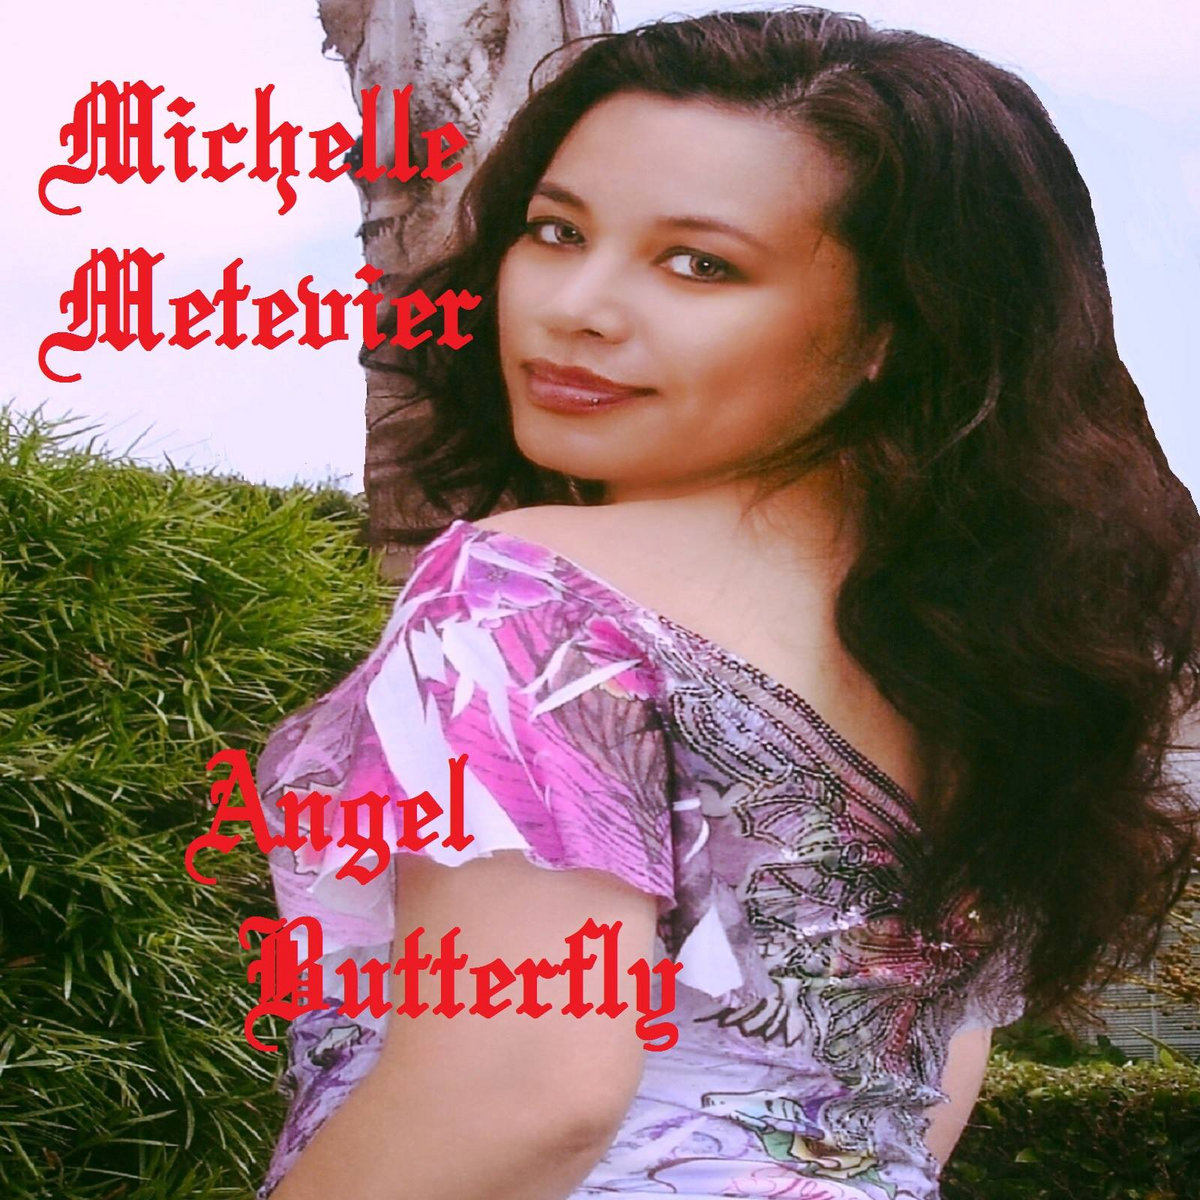 Angel Butterfly by Michelle Metevier